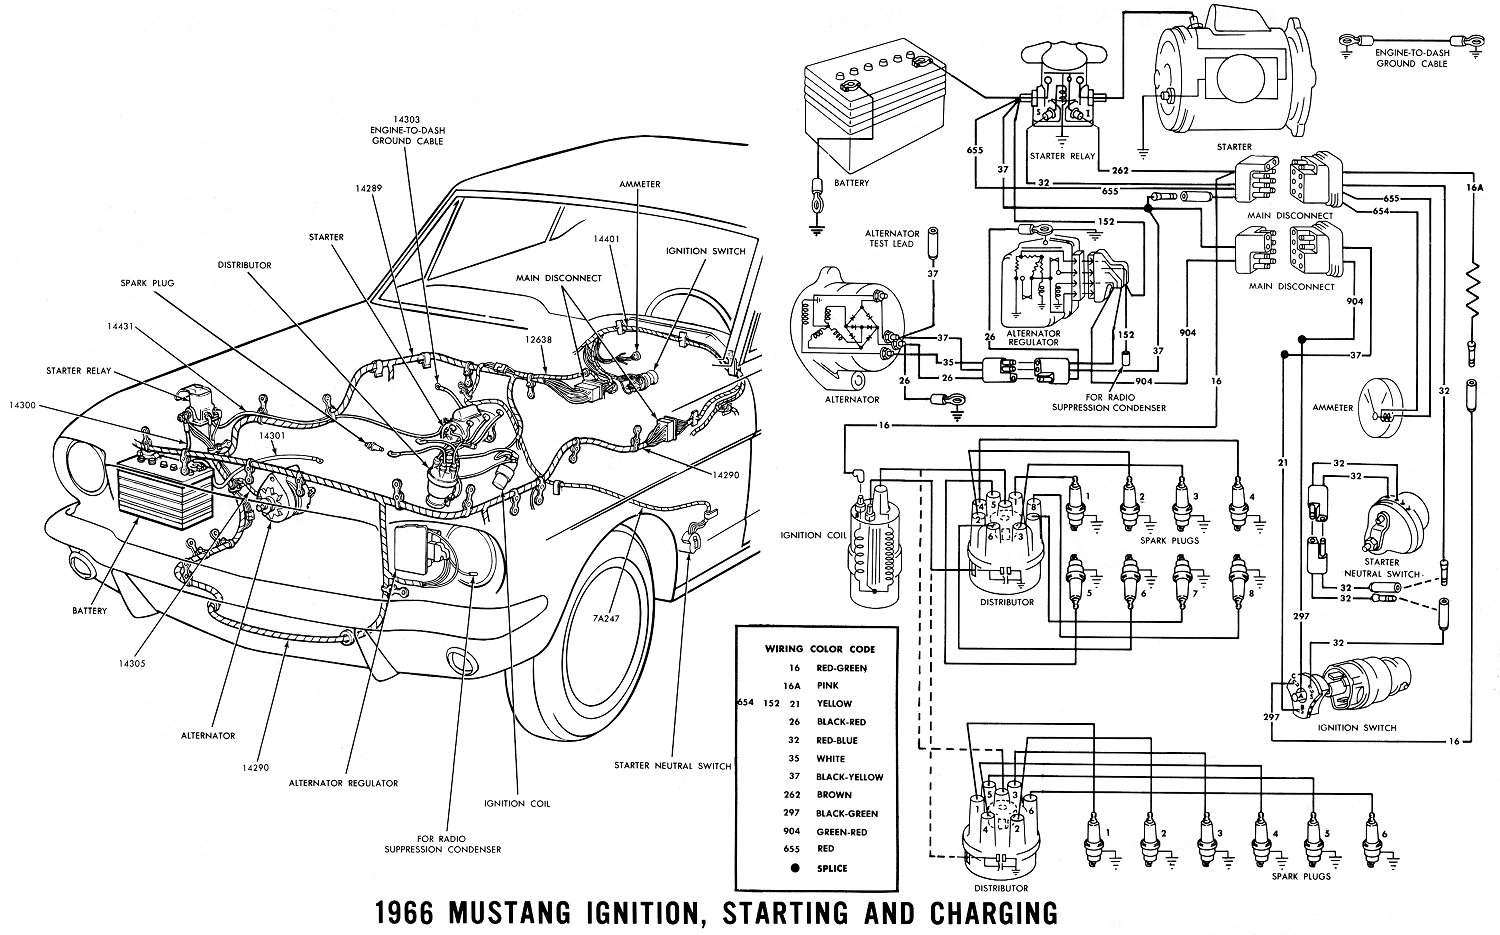 66ignit 1966 mustang wiring diagrams average joe restoration 66 mustang wiring diagram at nearapp.co